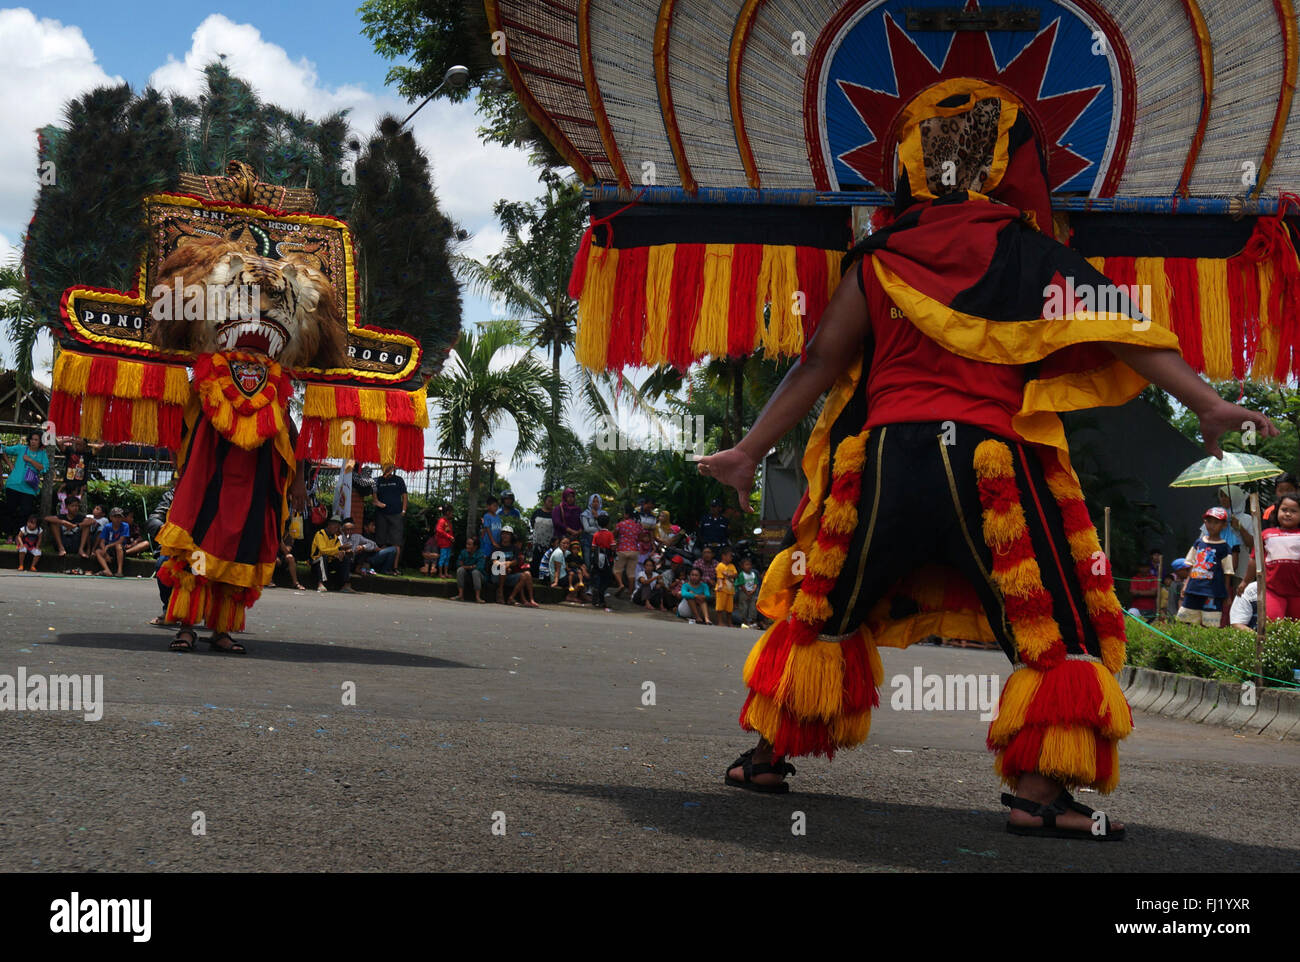 Reog ponorogo stock photos reog ponorogo stock images alamy artists featuring dance reog ponorogo thecheapjerseys Gallery